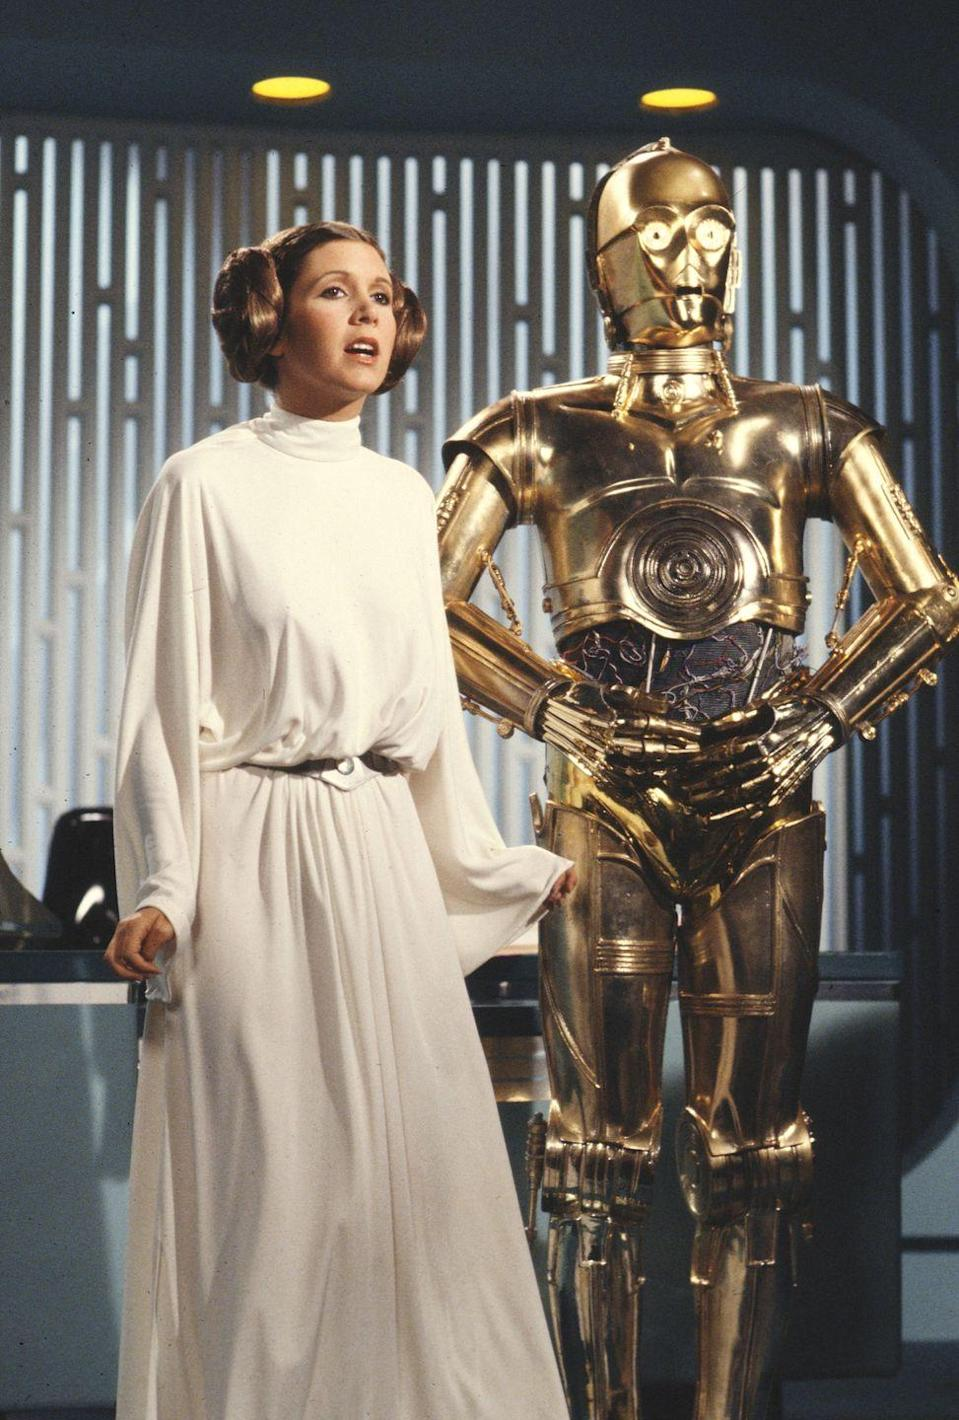 <p>Although this Princess Leia gown might be considered more costume than couture, with the draping fabric, billowing sleeves, and high neck, the <em>Star Wars</em> ensemble incorporates some of the biggest trends of the '70s—and it has rightfully earned a page in the pop culture history books. </p>